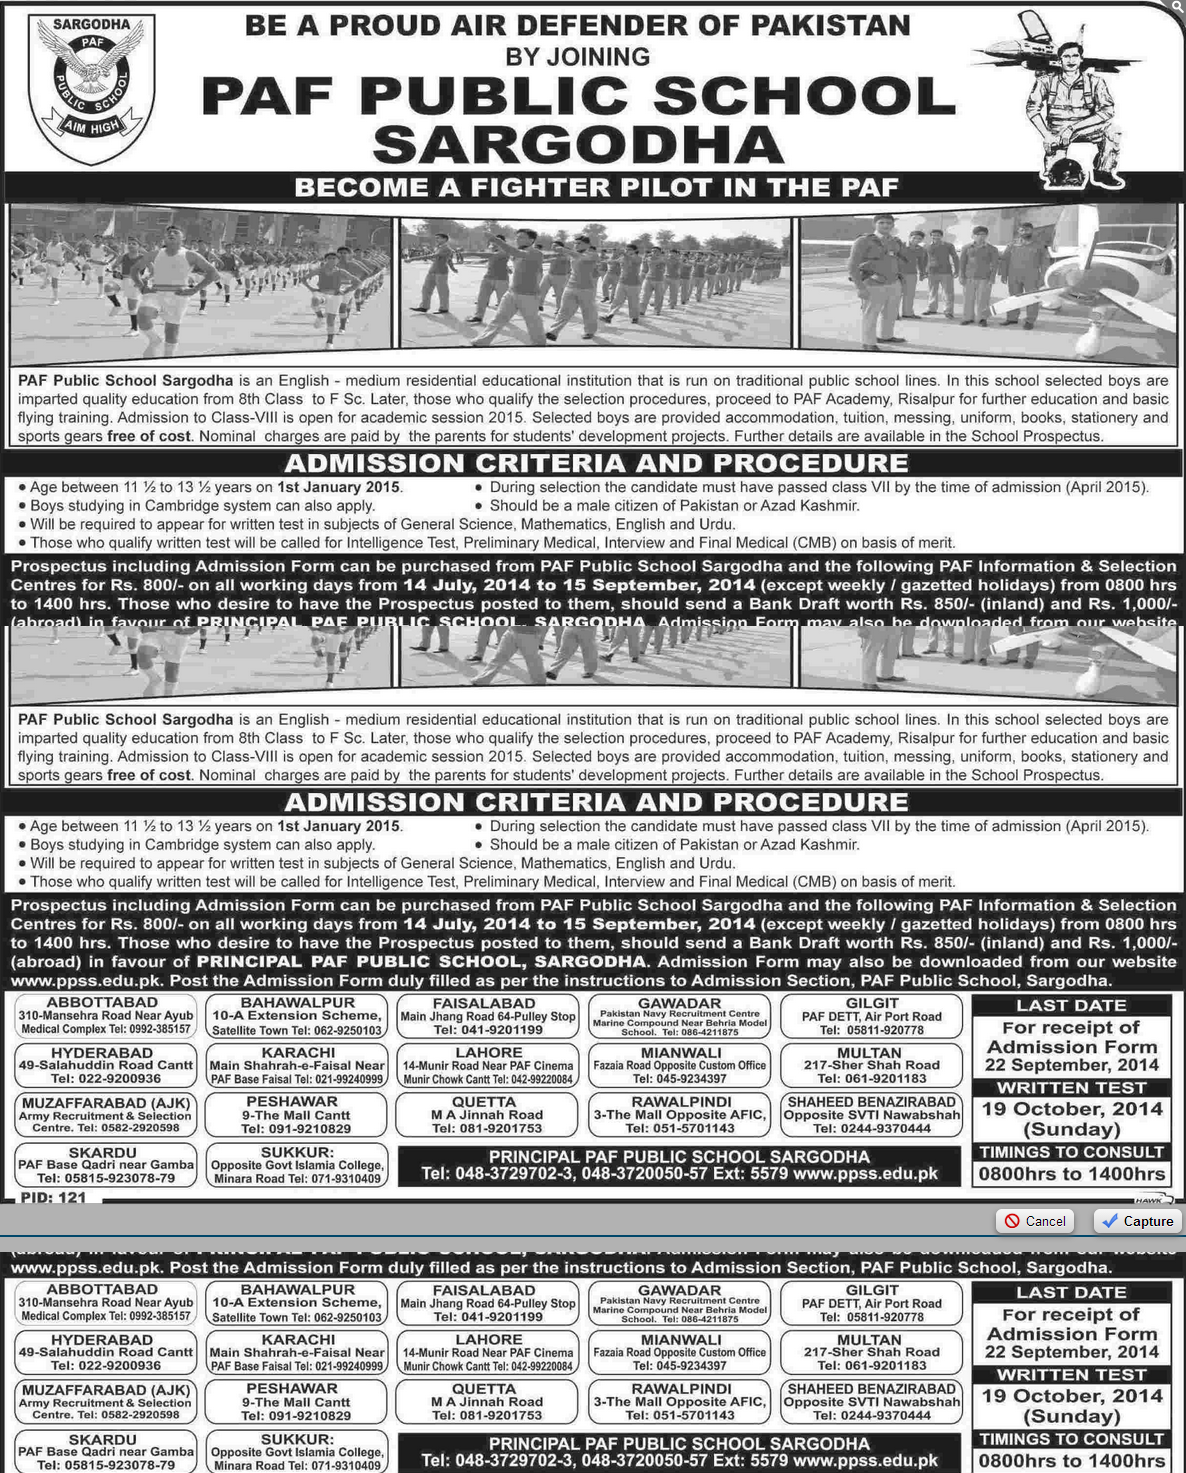 PAF Public School Sargodha Admission Criteria, Procedure 2014